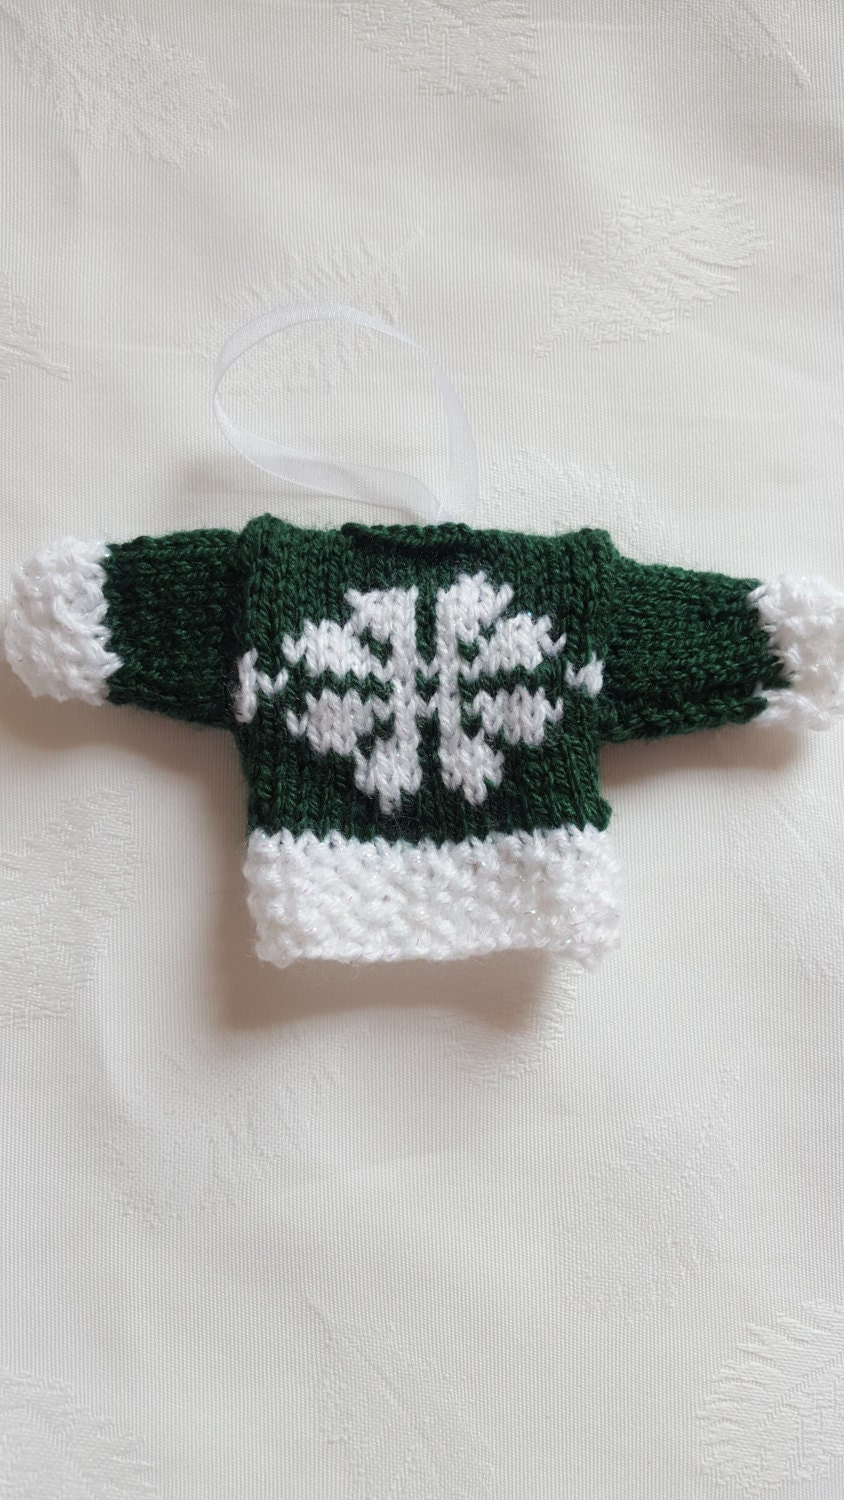 Knitted Mini Jumpers Christmas tree ornament Christmas tree accessory stocking stuffer handmade snowflake jumper